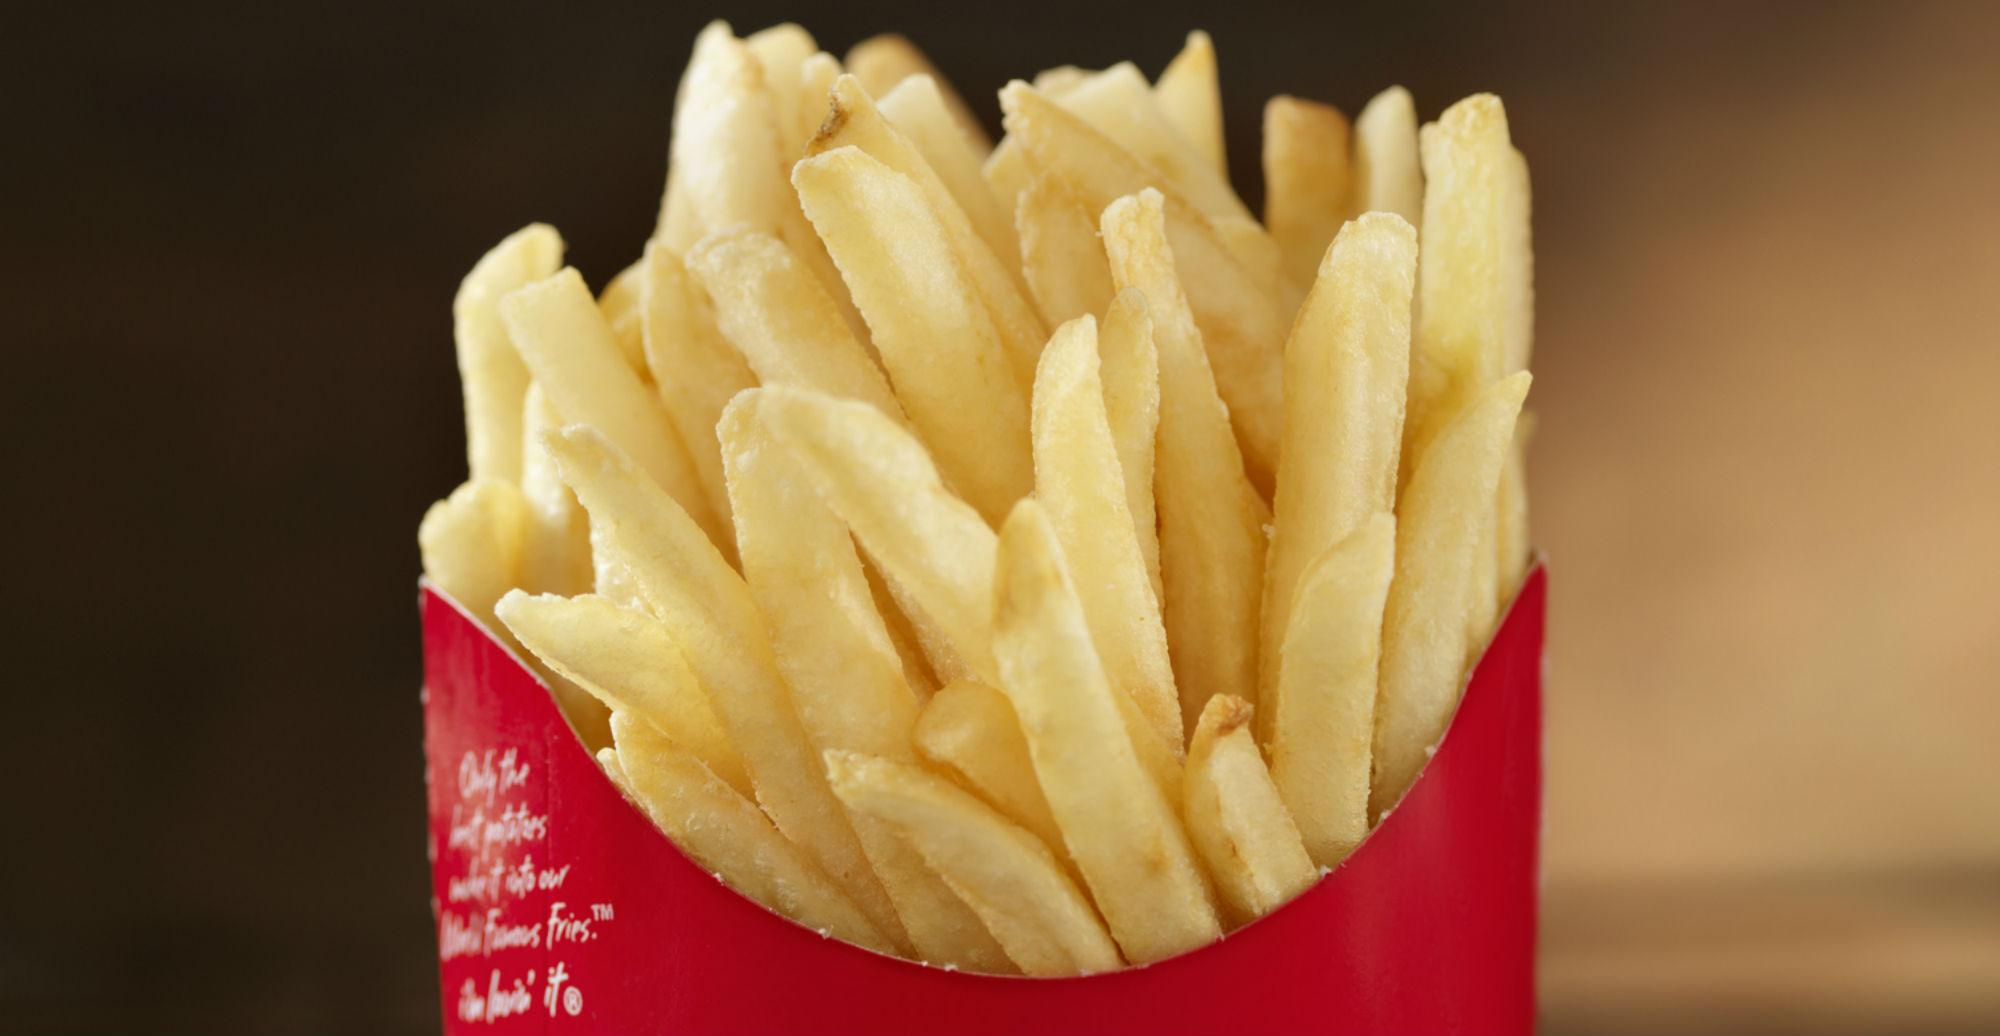 This is why McDonald's changed their French fries recipe | indy100